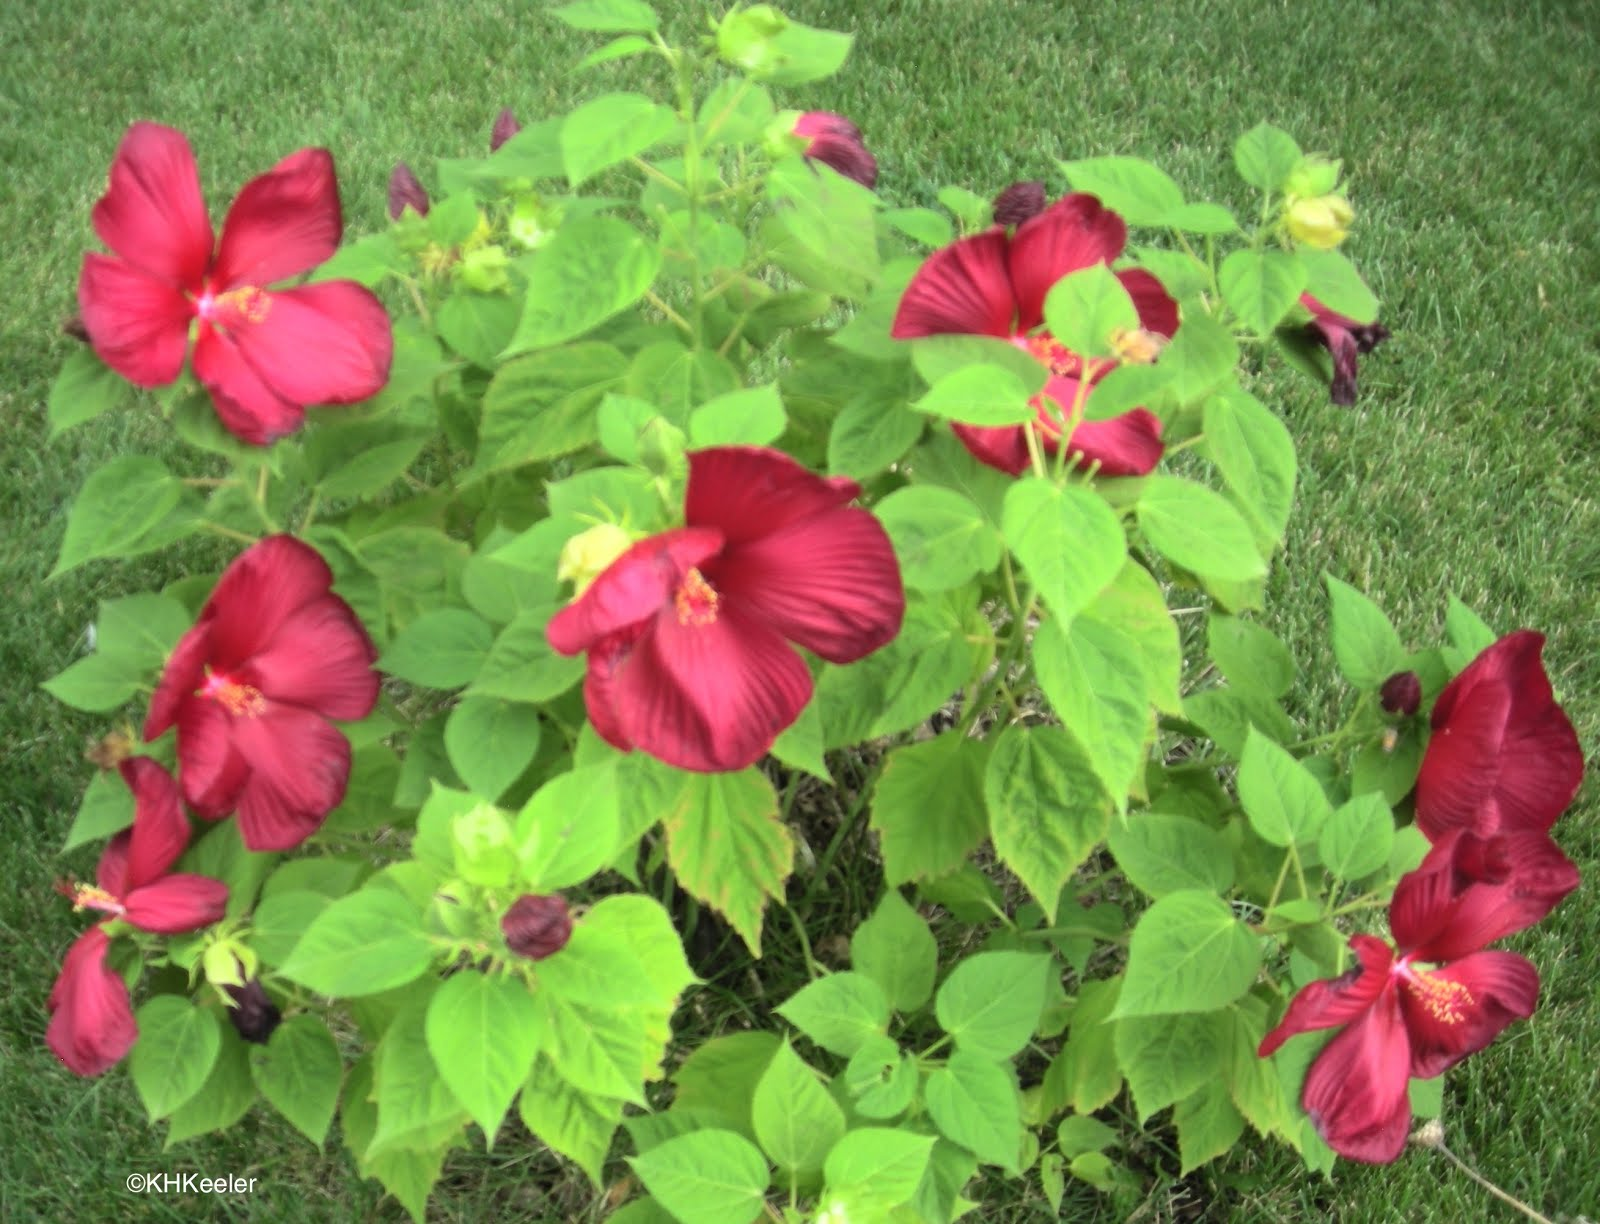 A wandering botanist plant story hibiscus flowers of this hybiscus made a nice dye h xmoscheutos not h syriaca izmirmasajfo